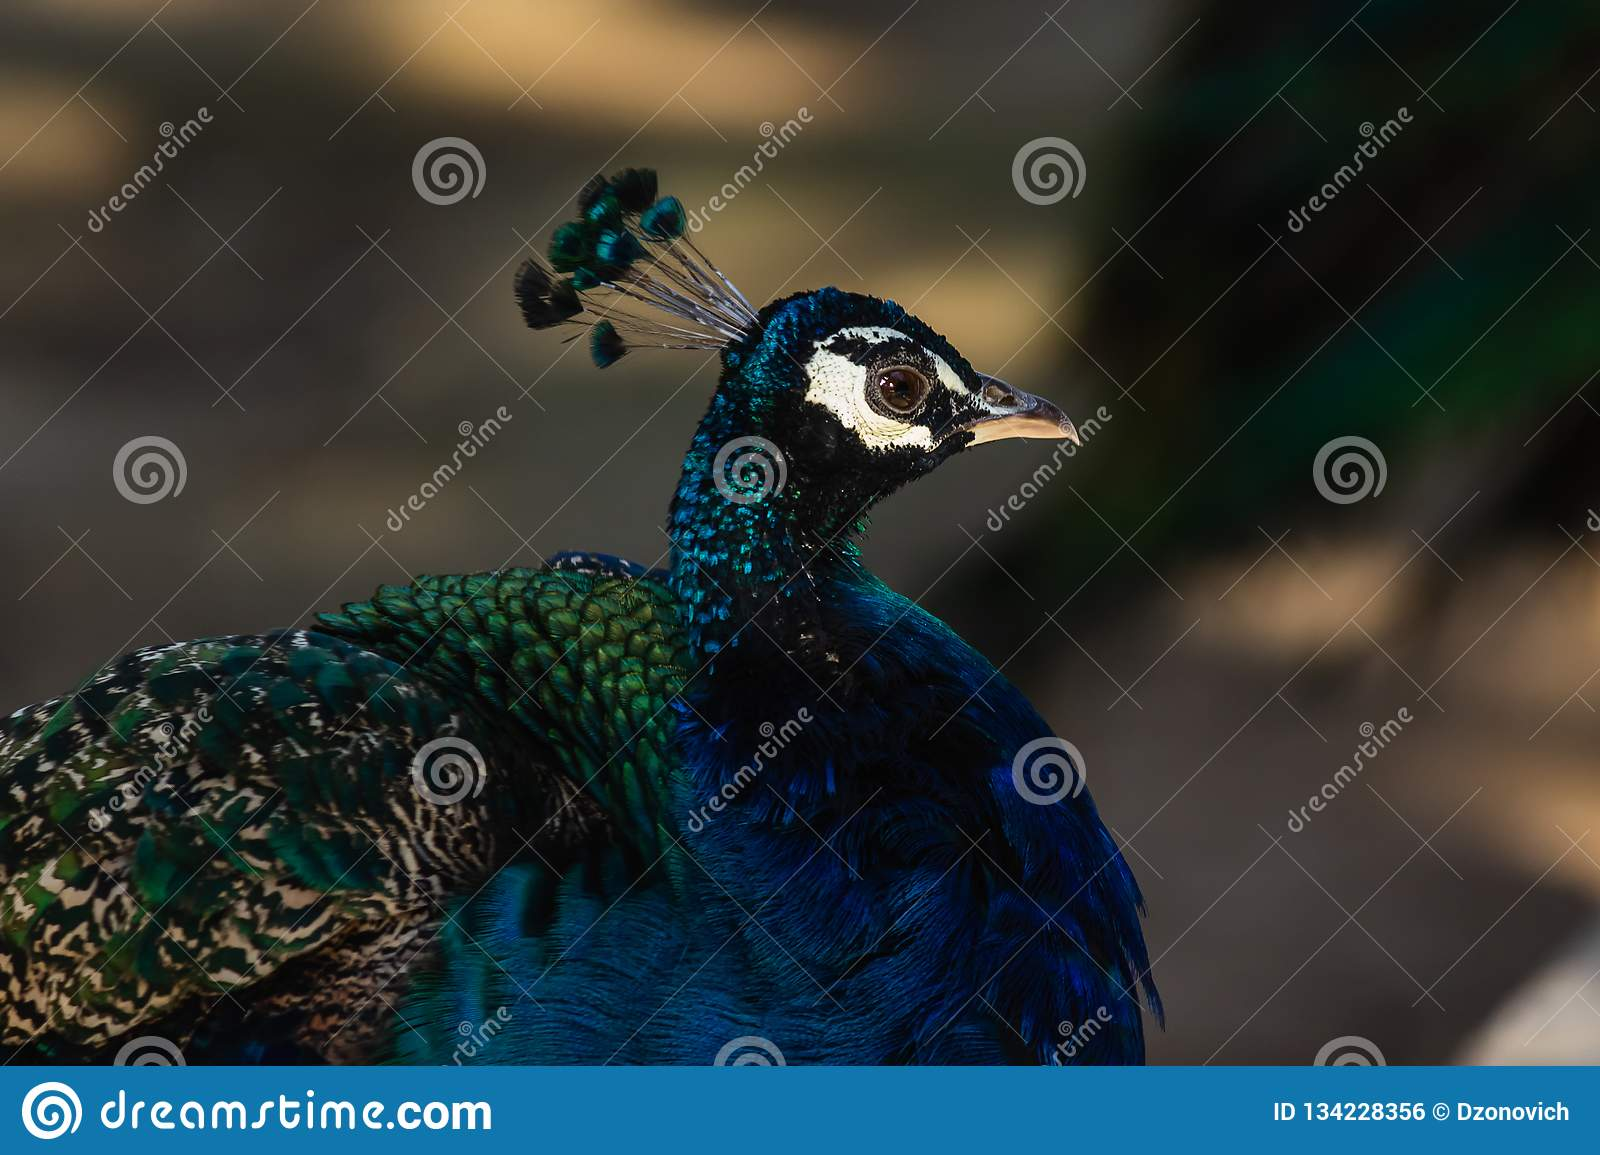 Peacock with bright colorful plumage